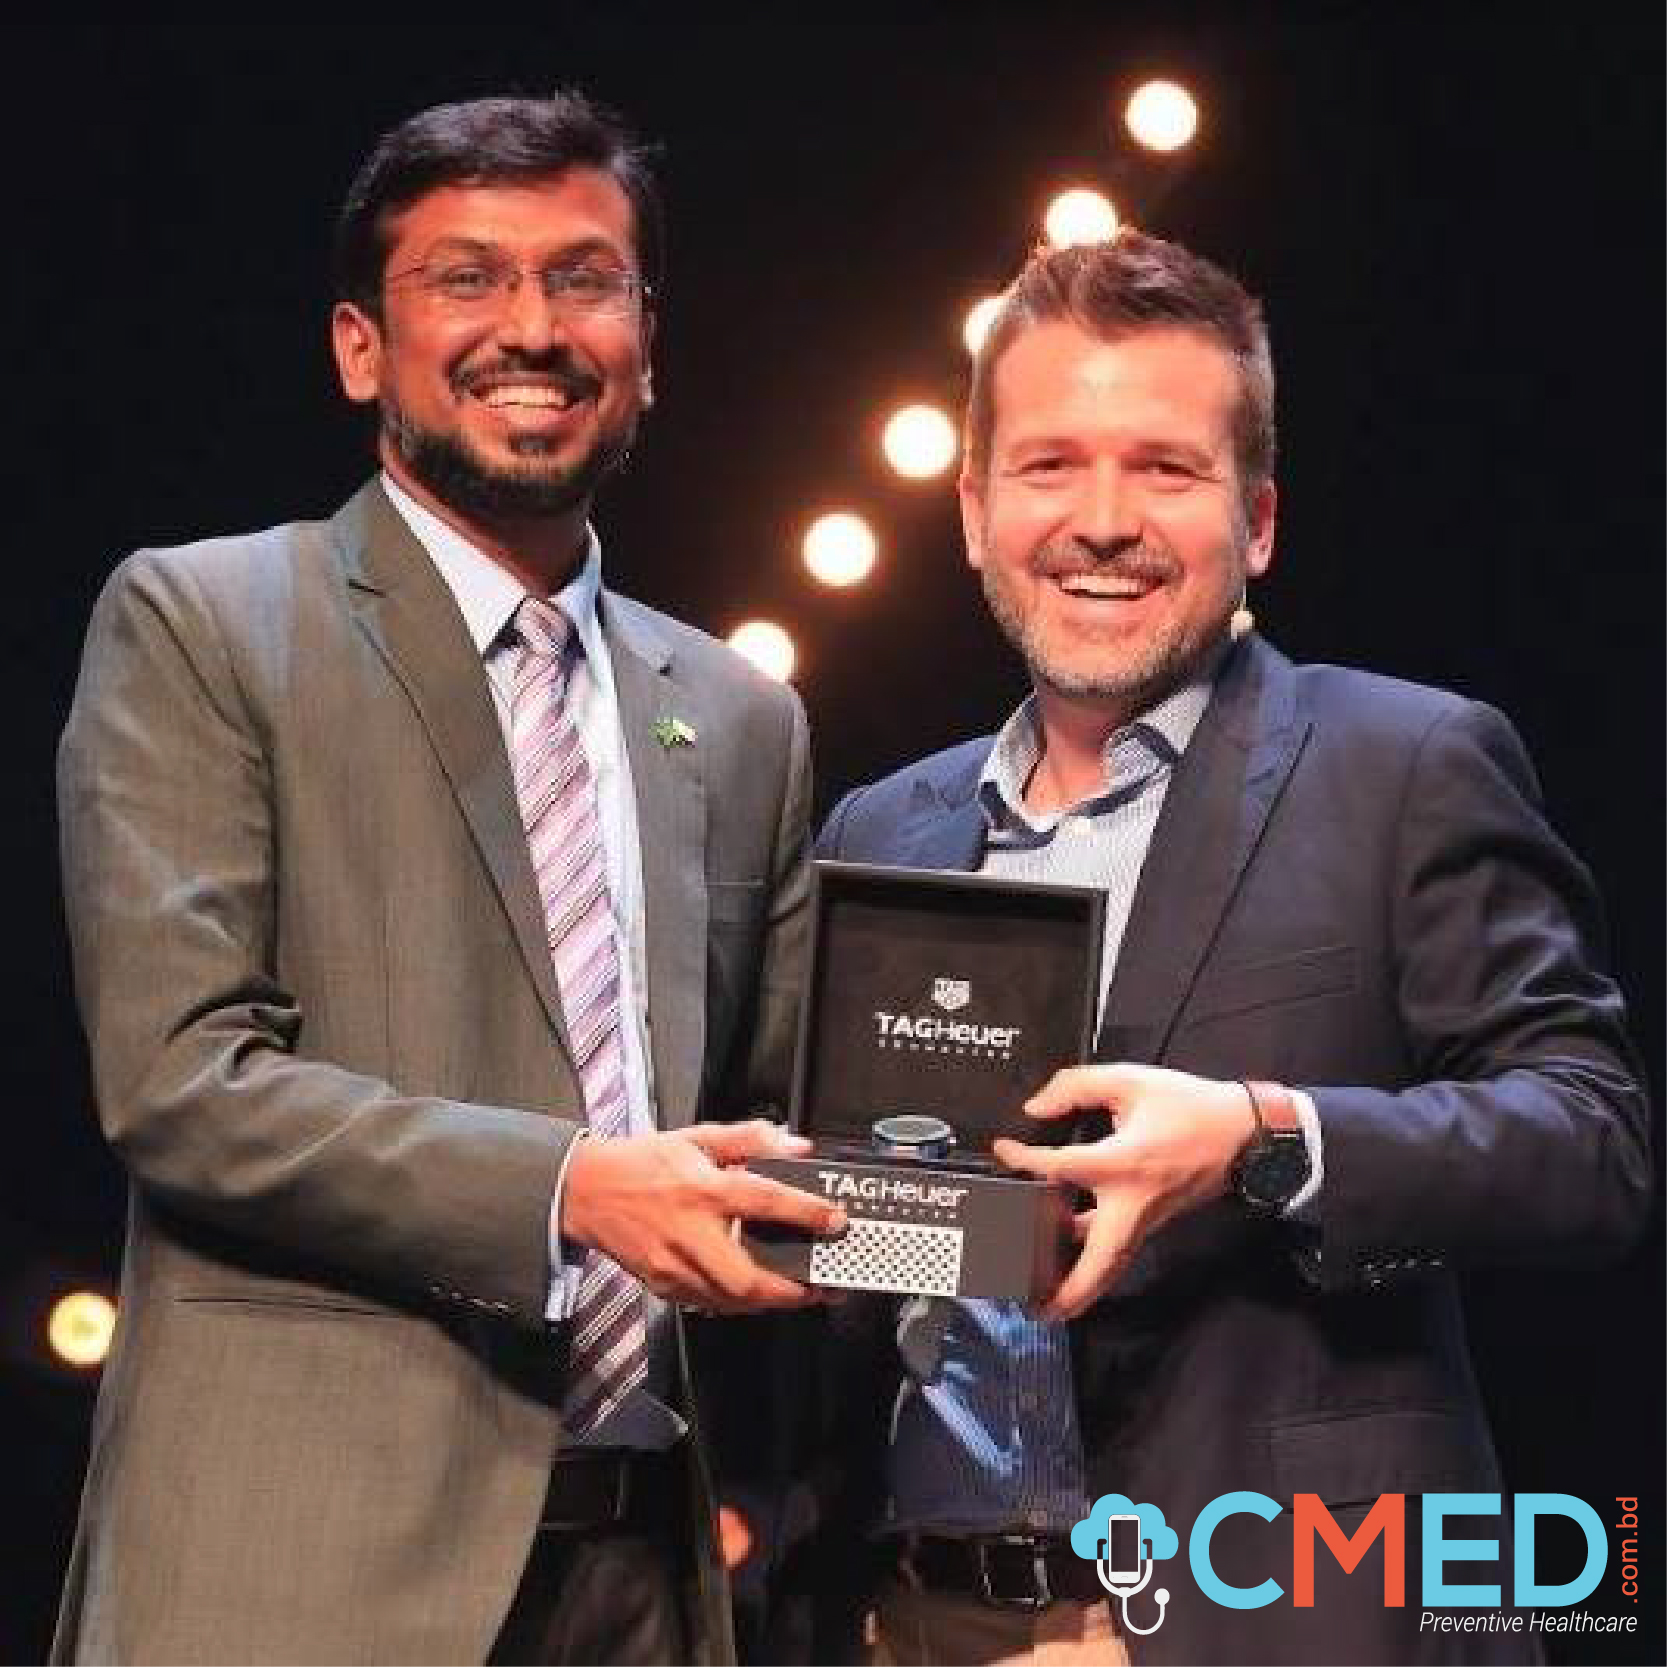 The chairman of CMED Dr. Khondaker Abdullah Al Mamun Receiving the innovation prize sponsored by TAG Heuer at Seedstars Summit 2018 in Switzerland